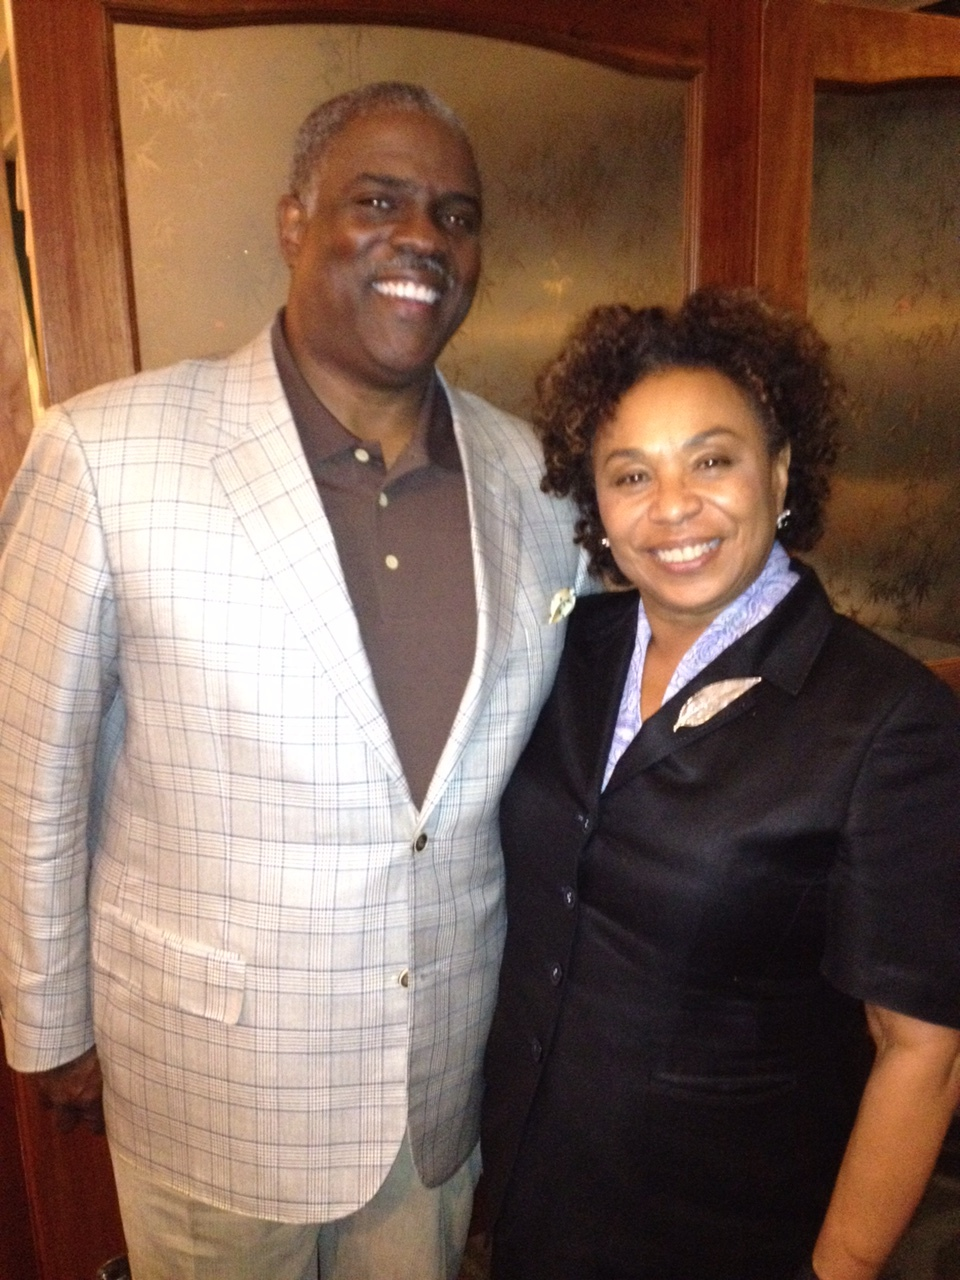 Professor Mark T. Harris, Esq. with the Honorable United States Reprasenative Barbara Lee